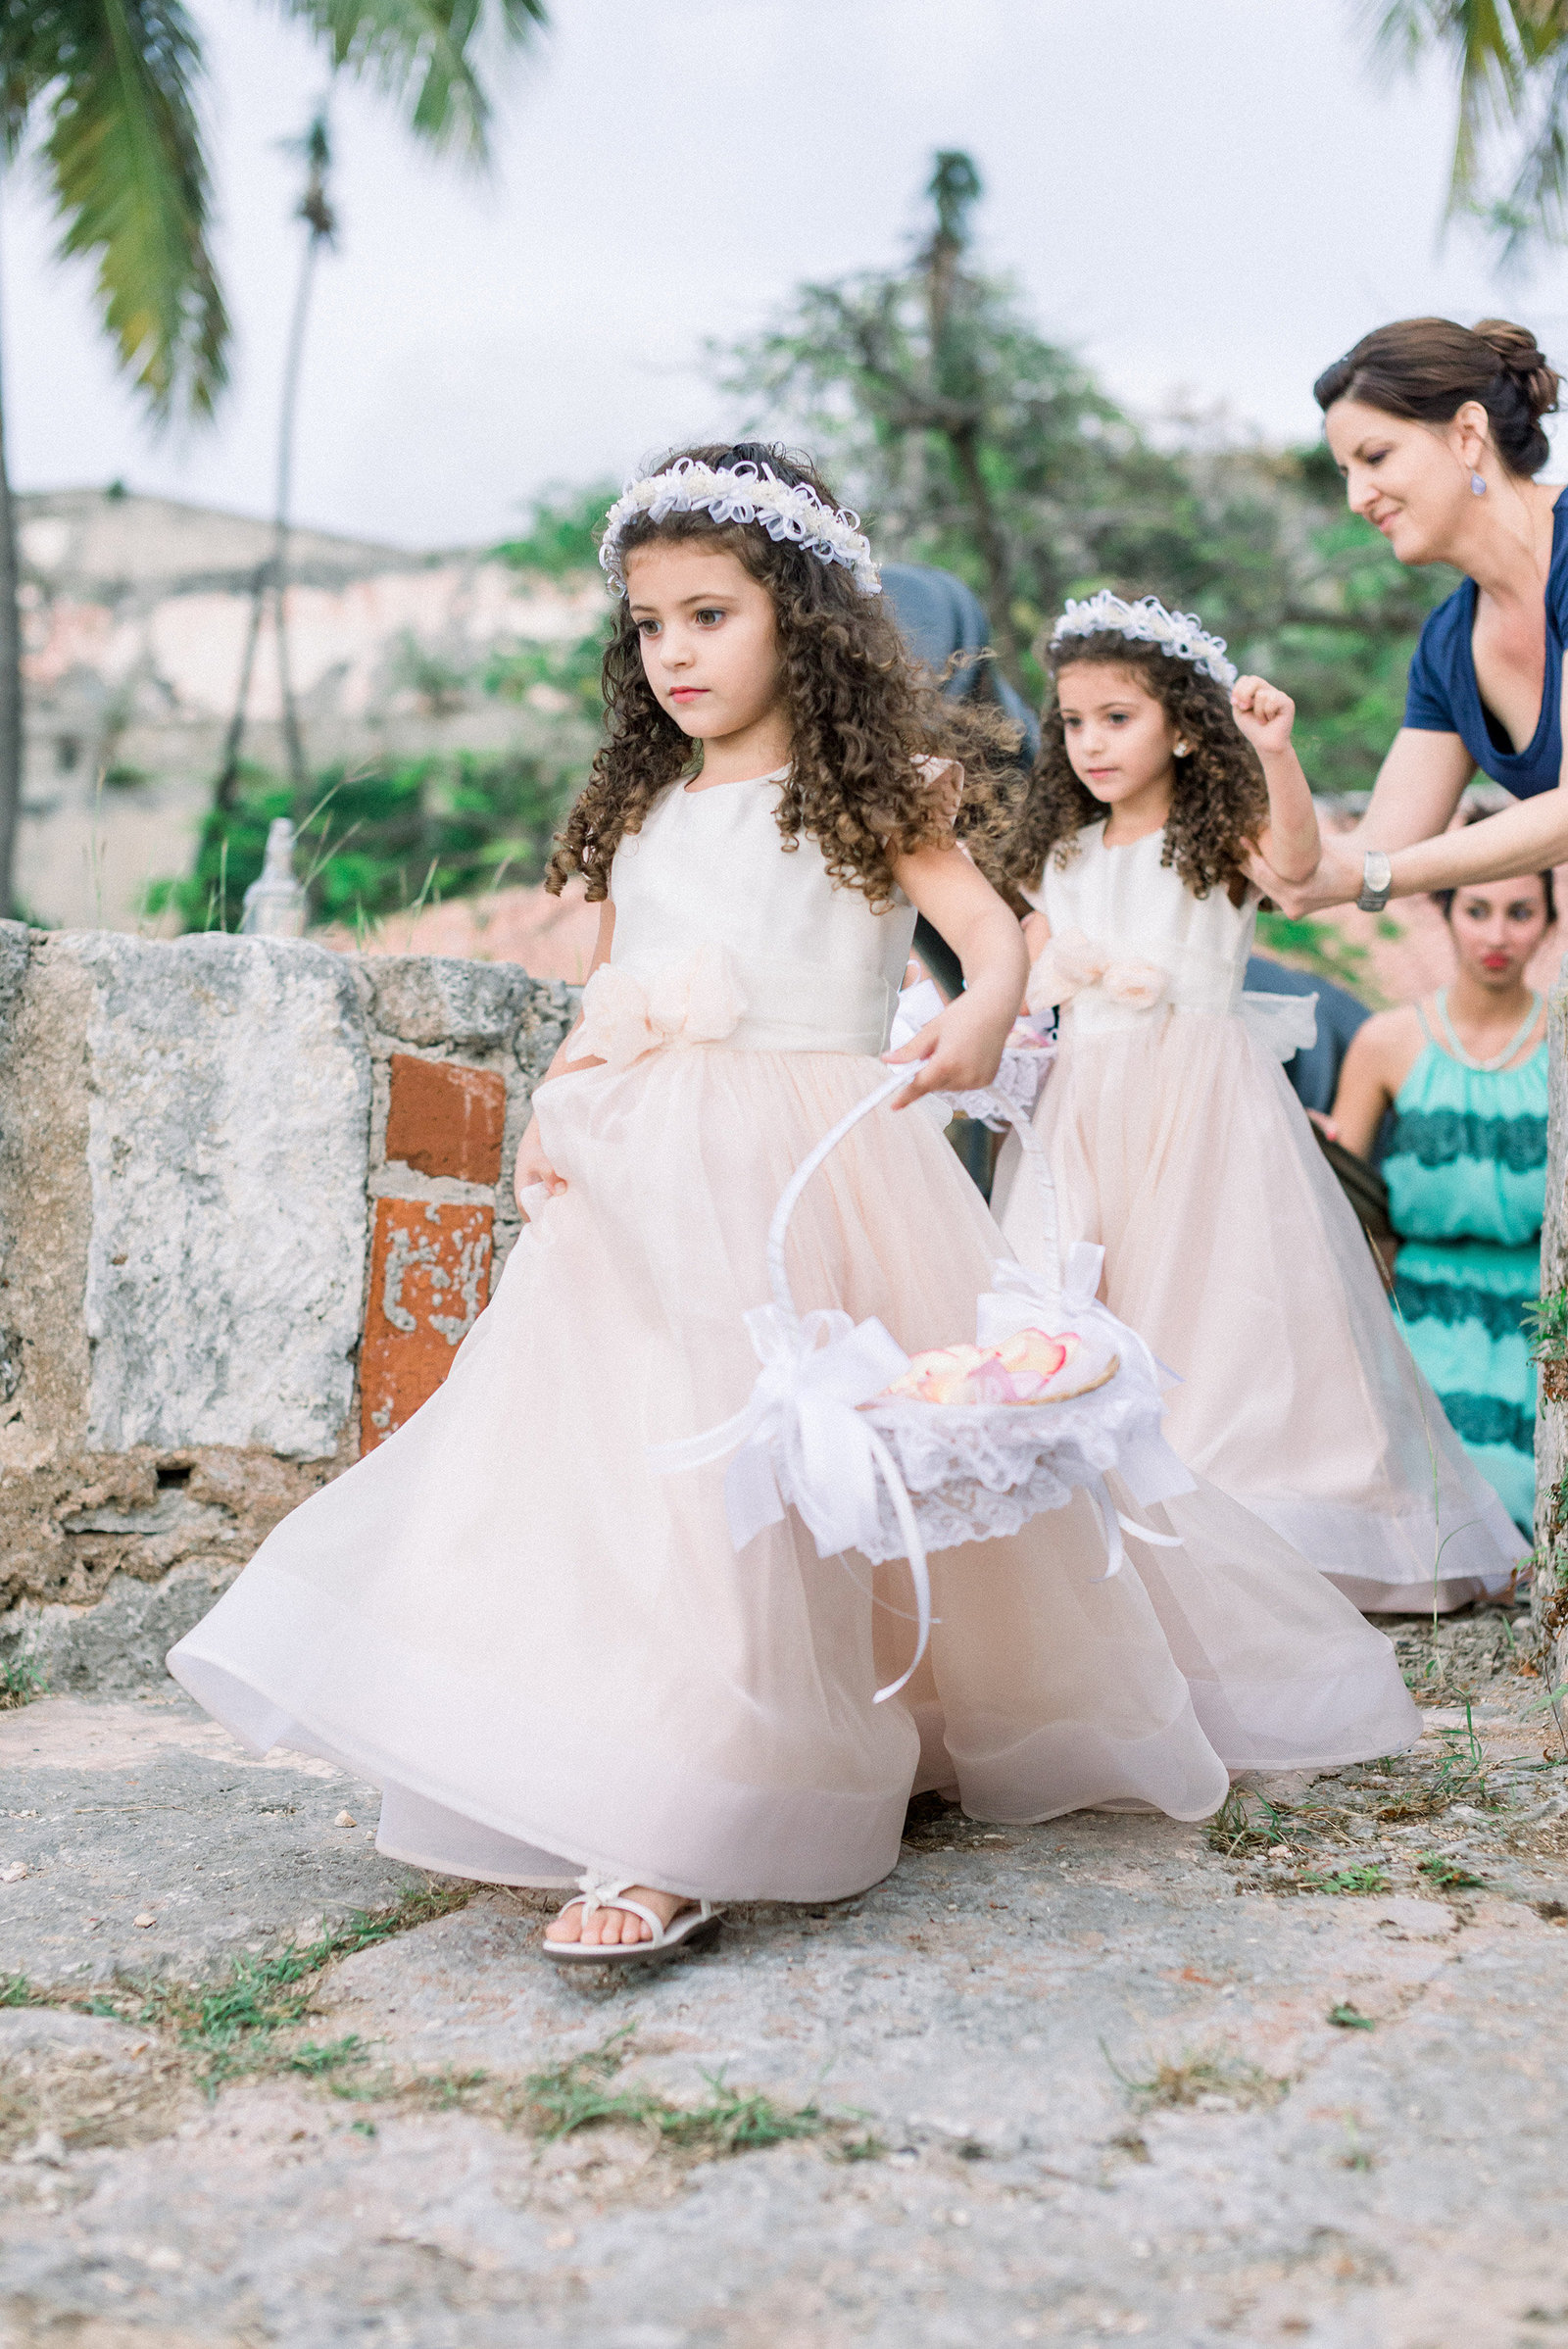 20150328-Pura-Soul-Photo-Cuba-Wedding-44